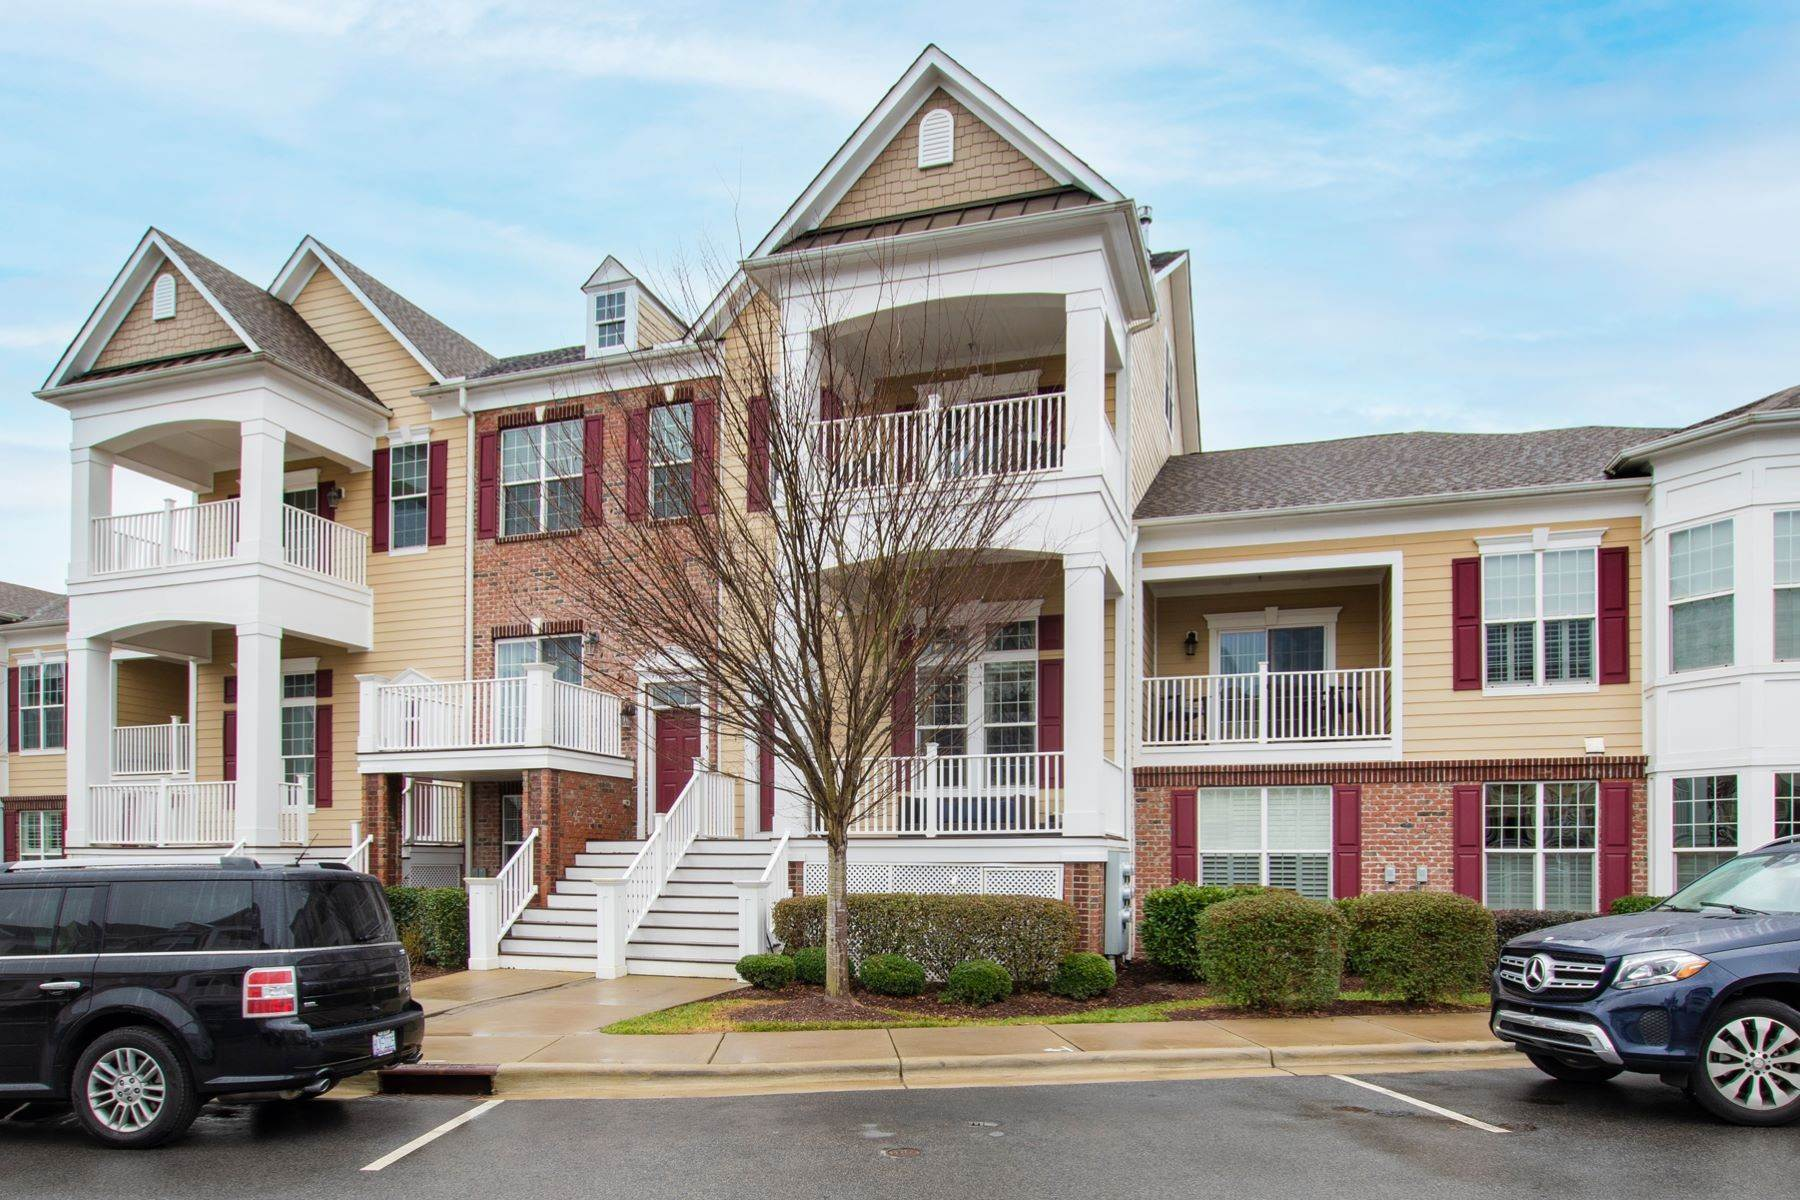 Condominiums for Sale at The Cottages at Brier Creek 10321-115 Sablewood Drive Raleigh, North Carolina 27617 United States